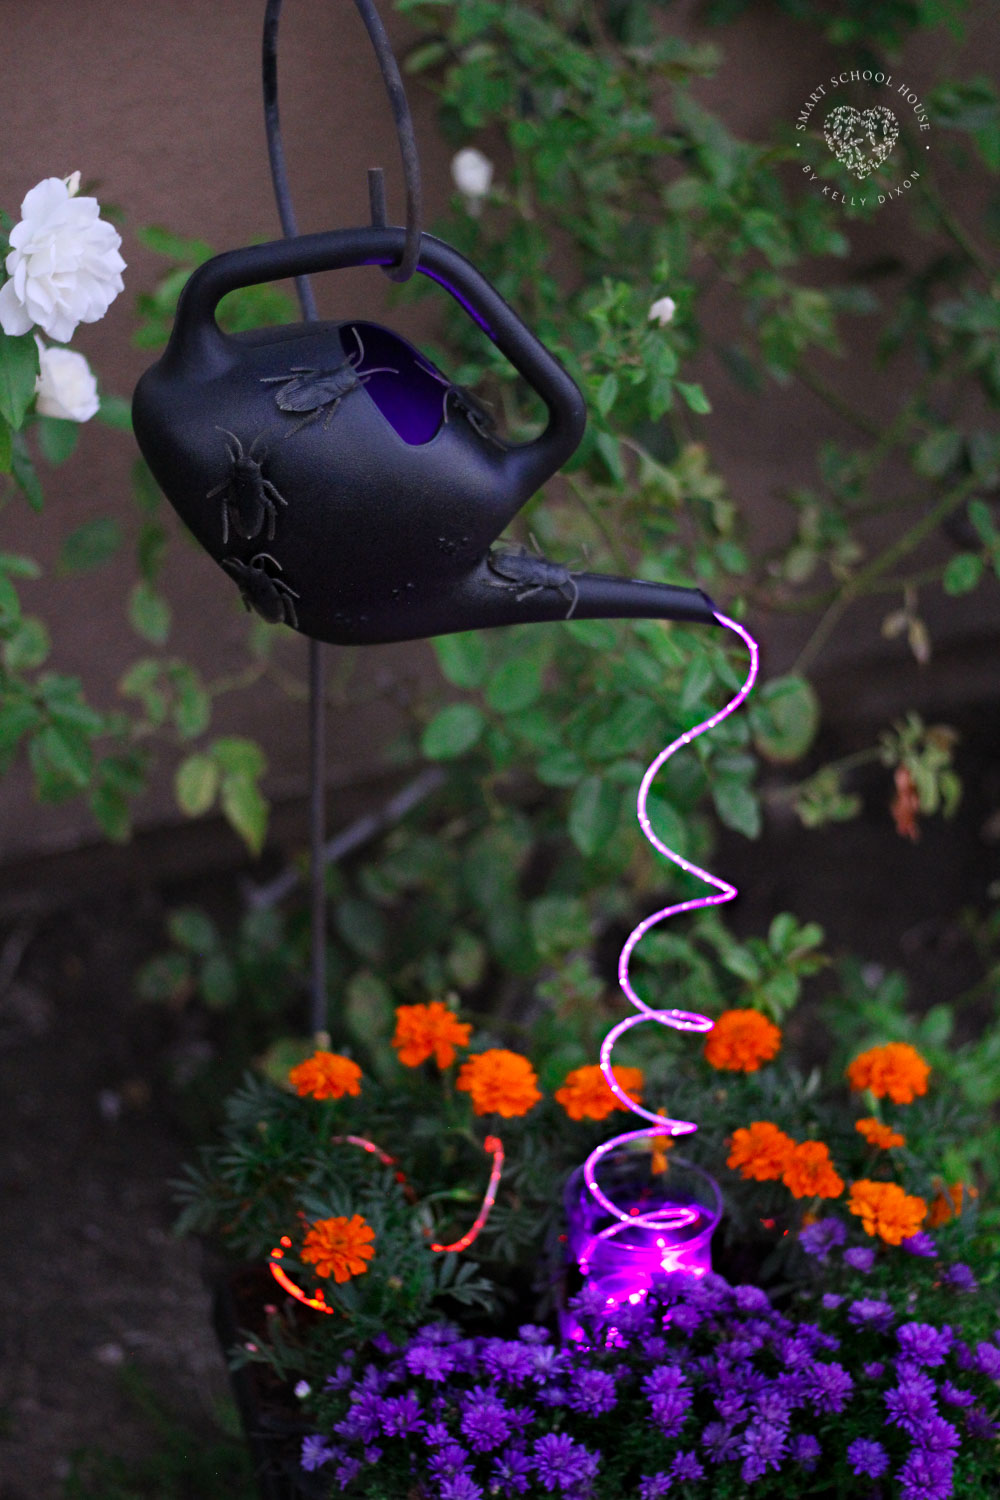 Halloween Watering Can with Lights. Spooky creepy crawlers on a black watering can with cascading purple lights.